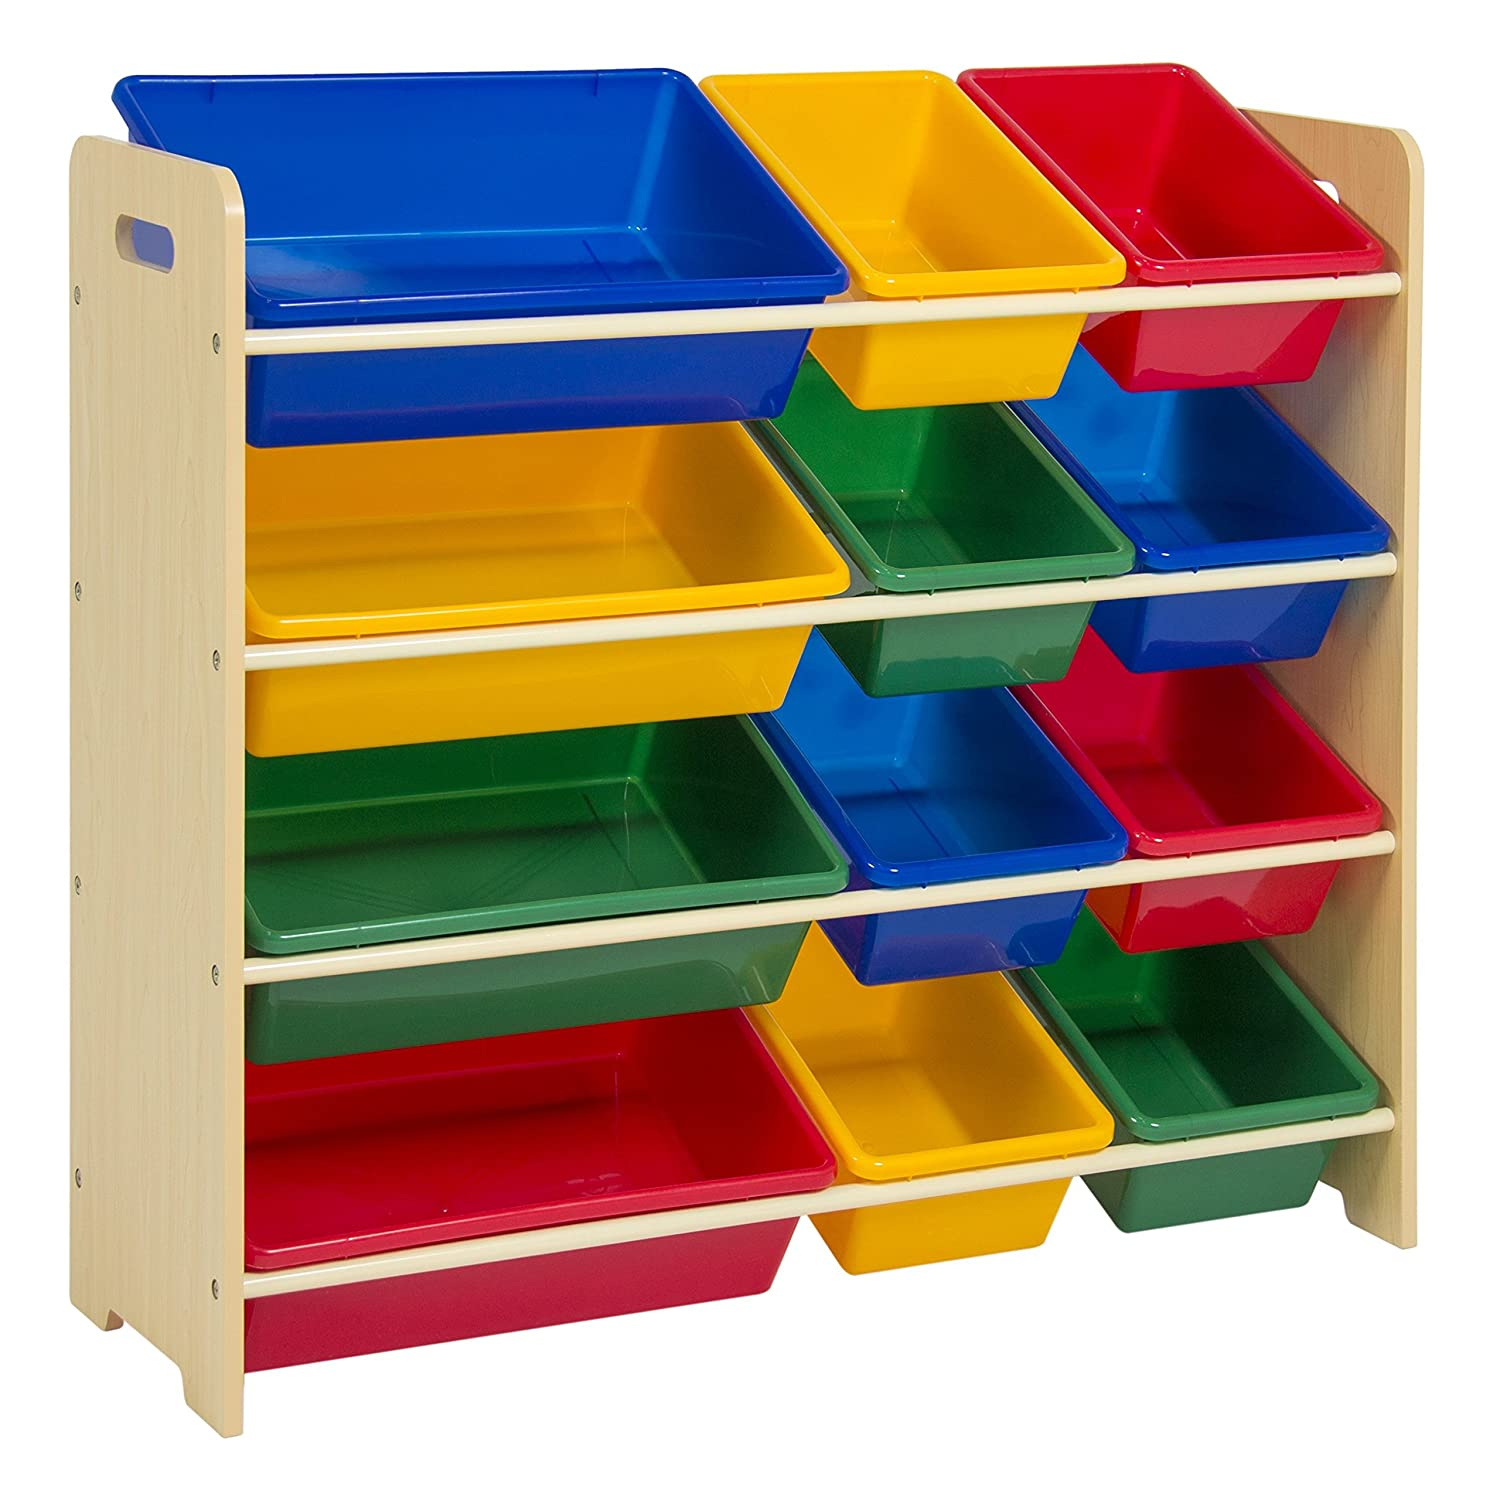 Amazon.com Best Choice Products Toy Bin Organizer Kids Childrens Storage Box Playroom Bedroom Shelf Drawer Toys u0026 Games  sc 1 st  Amazon.com & Amazon.com: Best Choice Products Toy Bin Organizer Kids Childrens ...